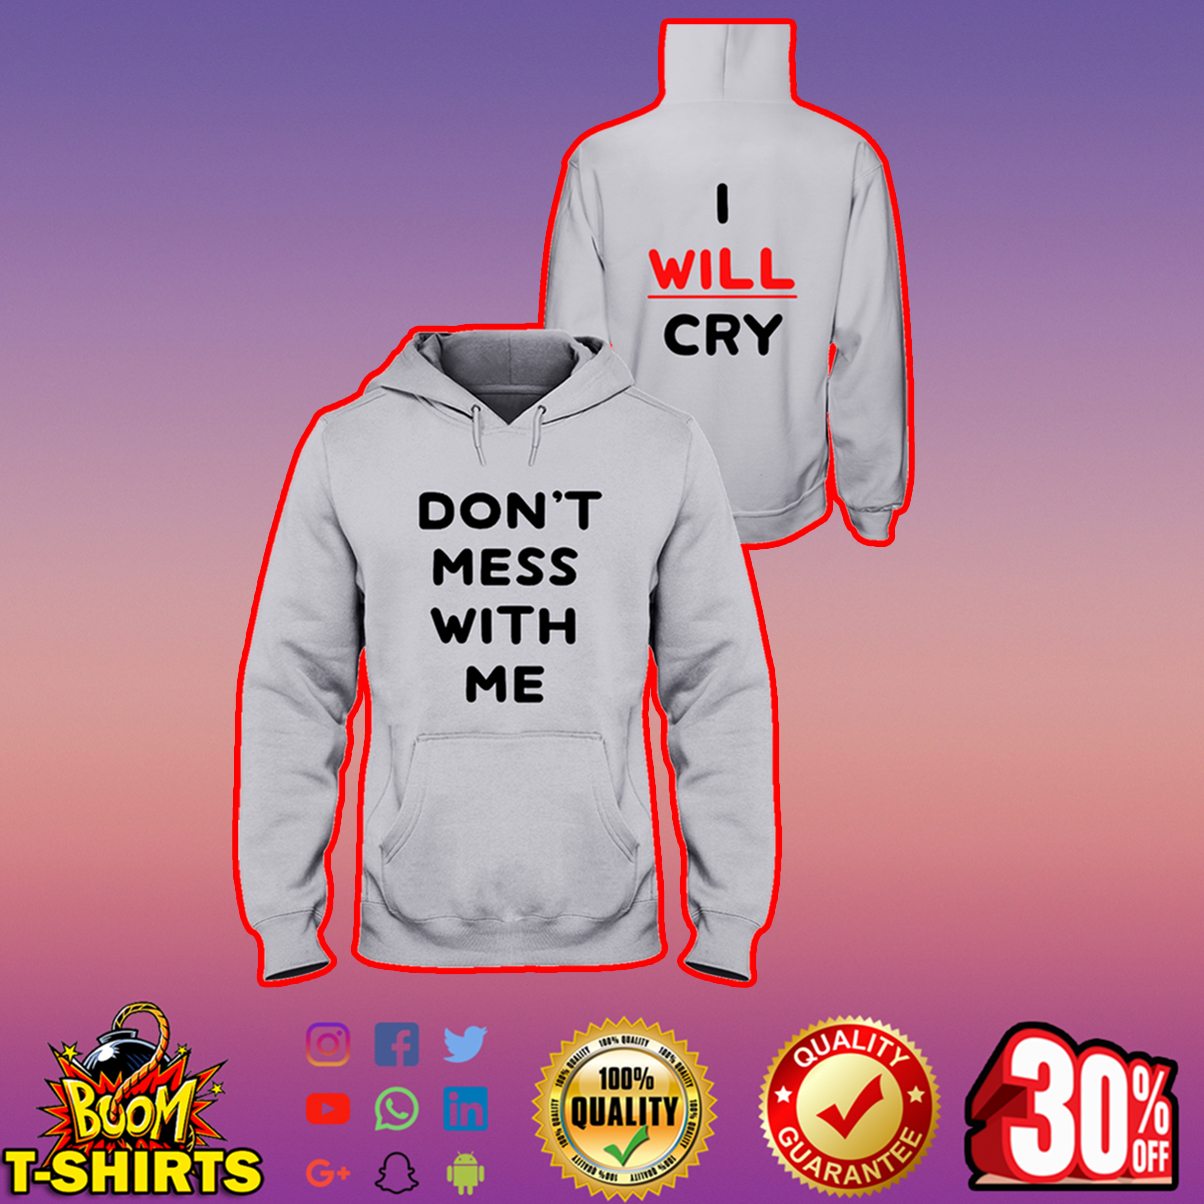 Don't mess with me I will cry hooded sweatshirt